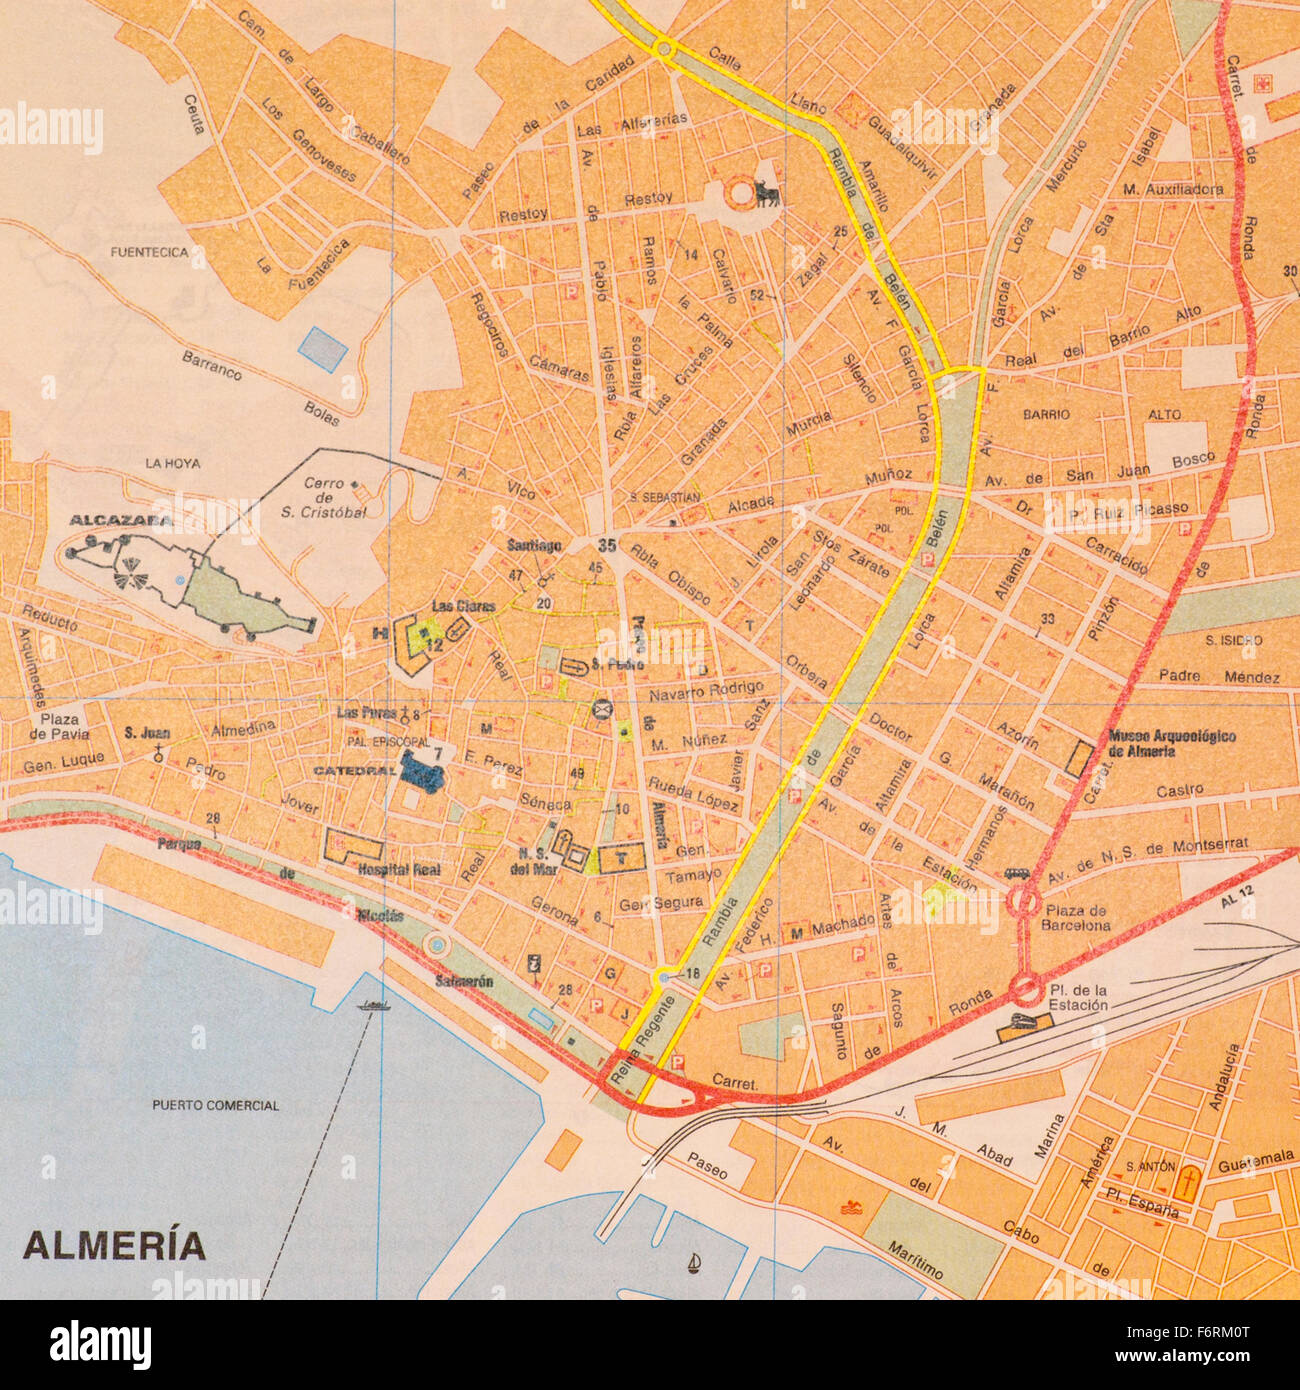 Map Of Spain Almeria.Street Map Of The Spanish City Of Almeria Spain Stock Photo